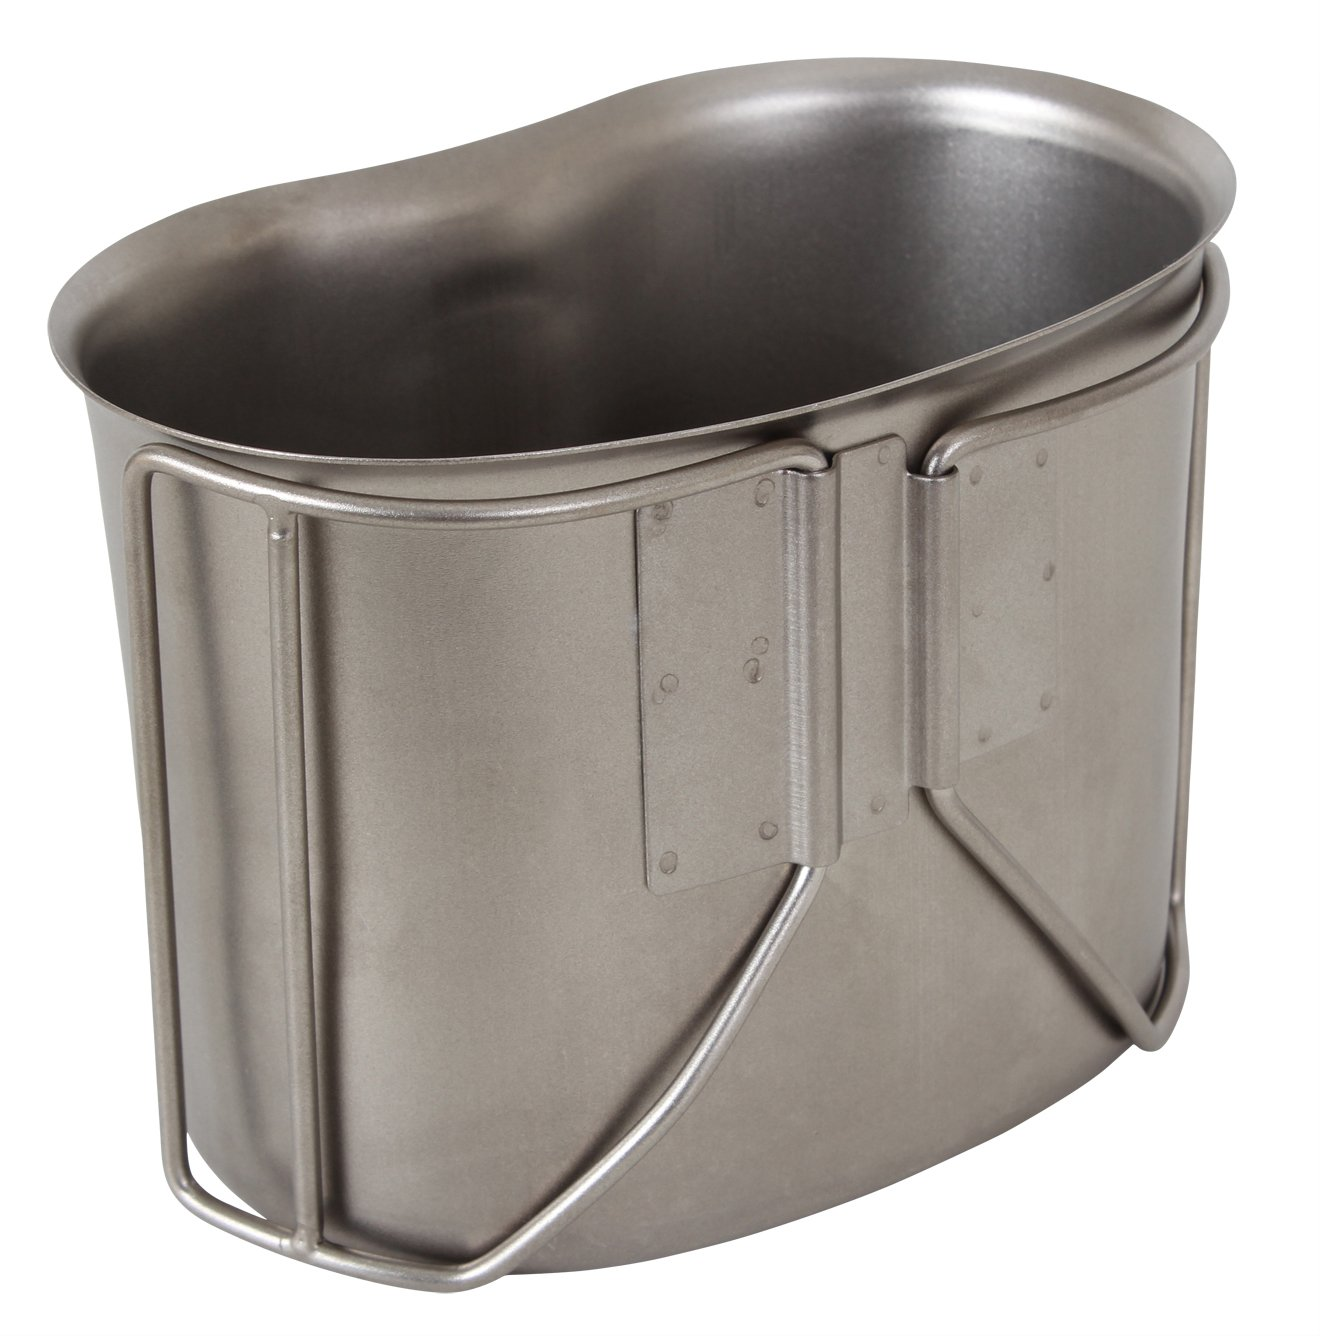 Rothco G.I. Type Stainless Steel Canteen Cup